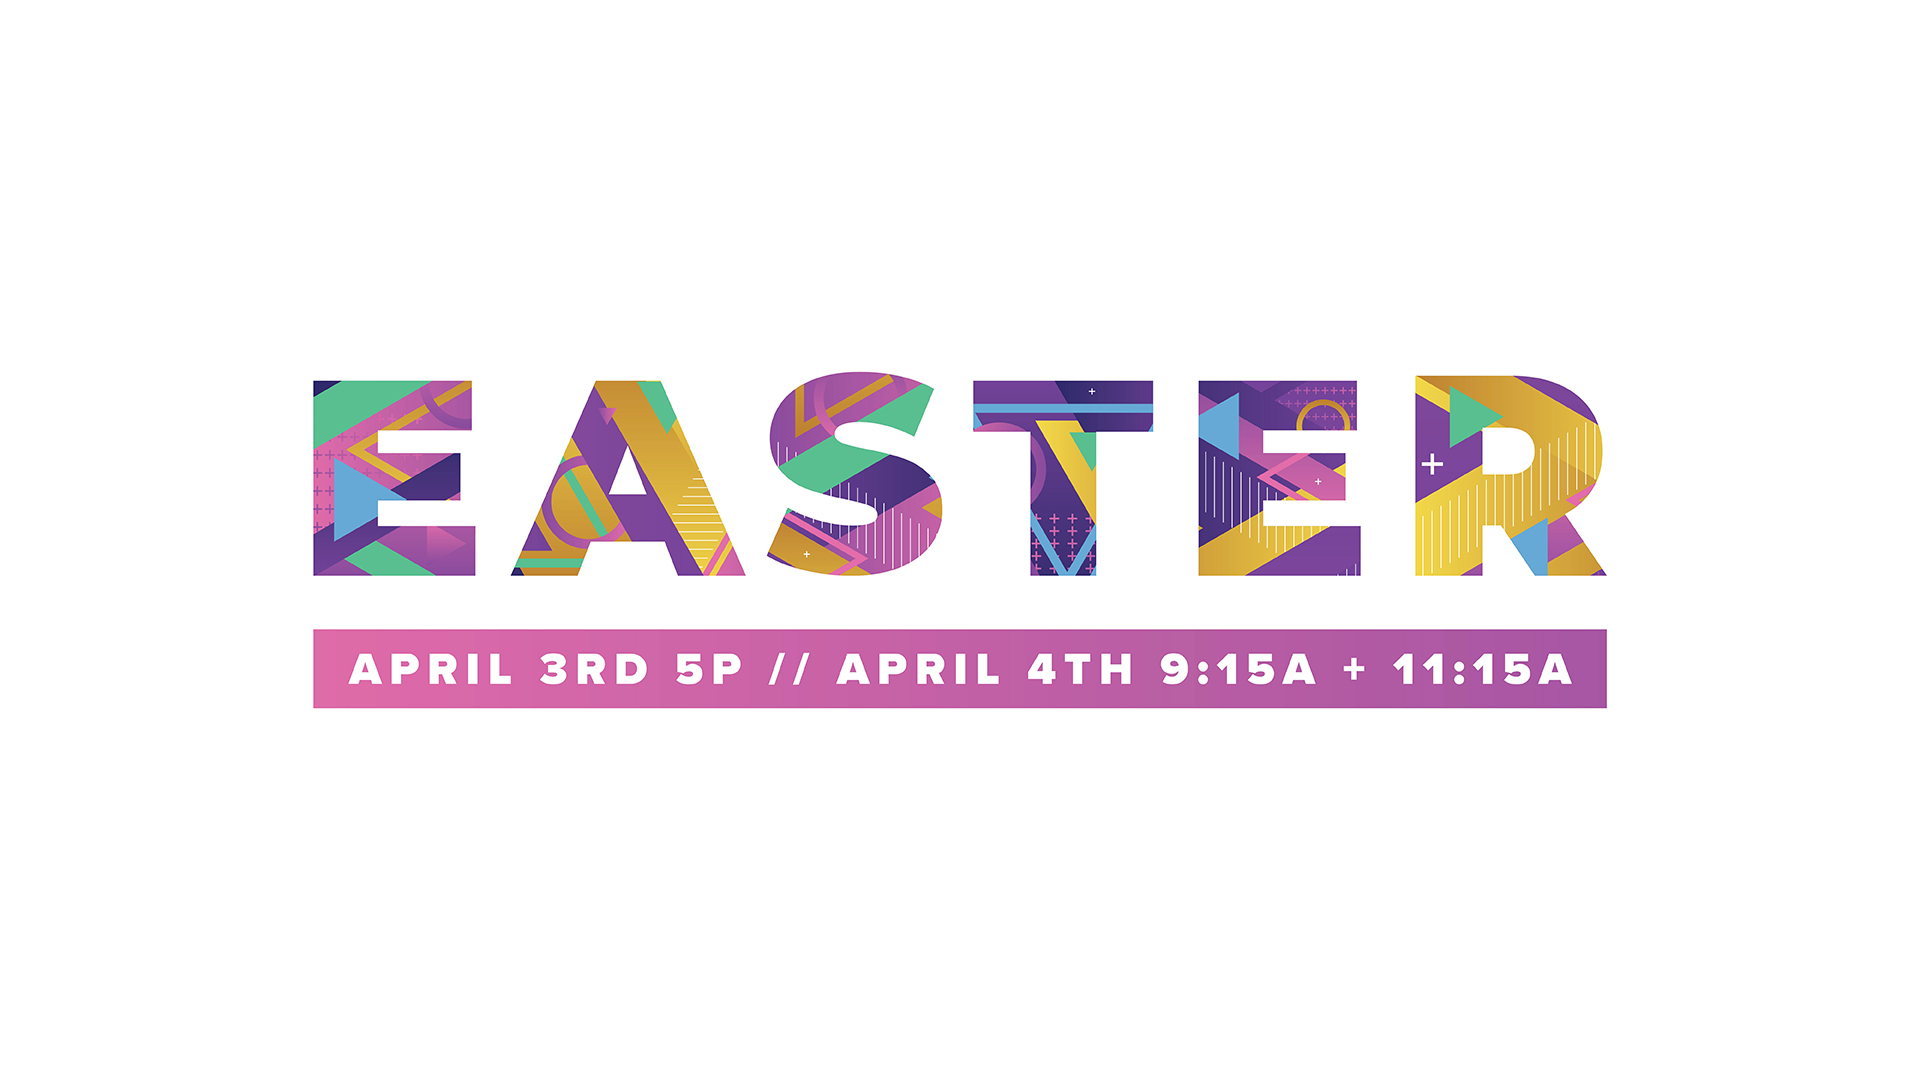 Series: Easter 2020: Walking with the Risen Christ